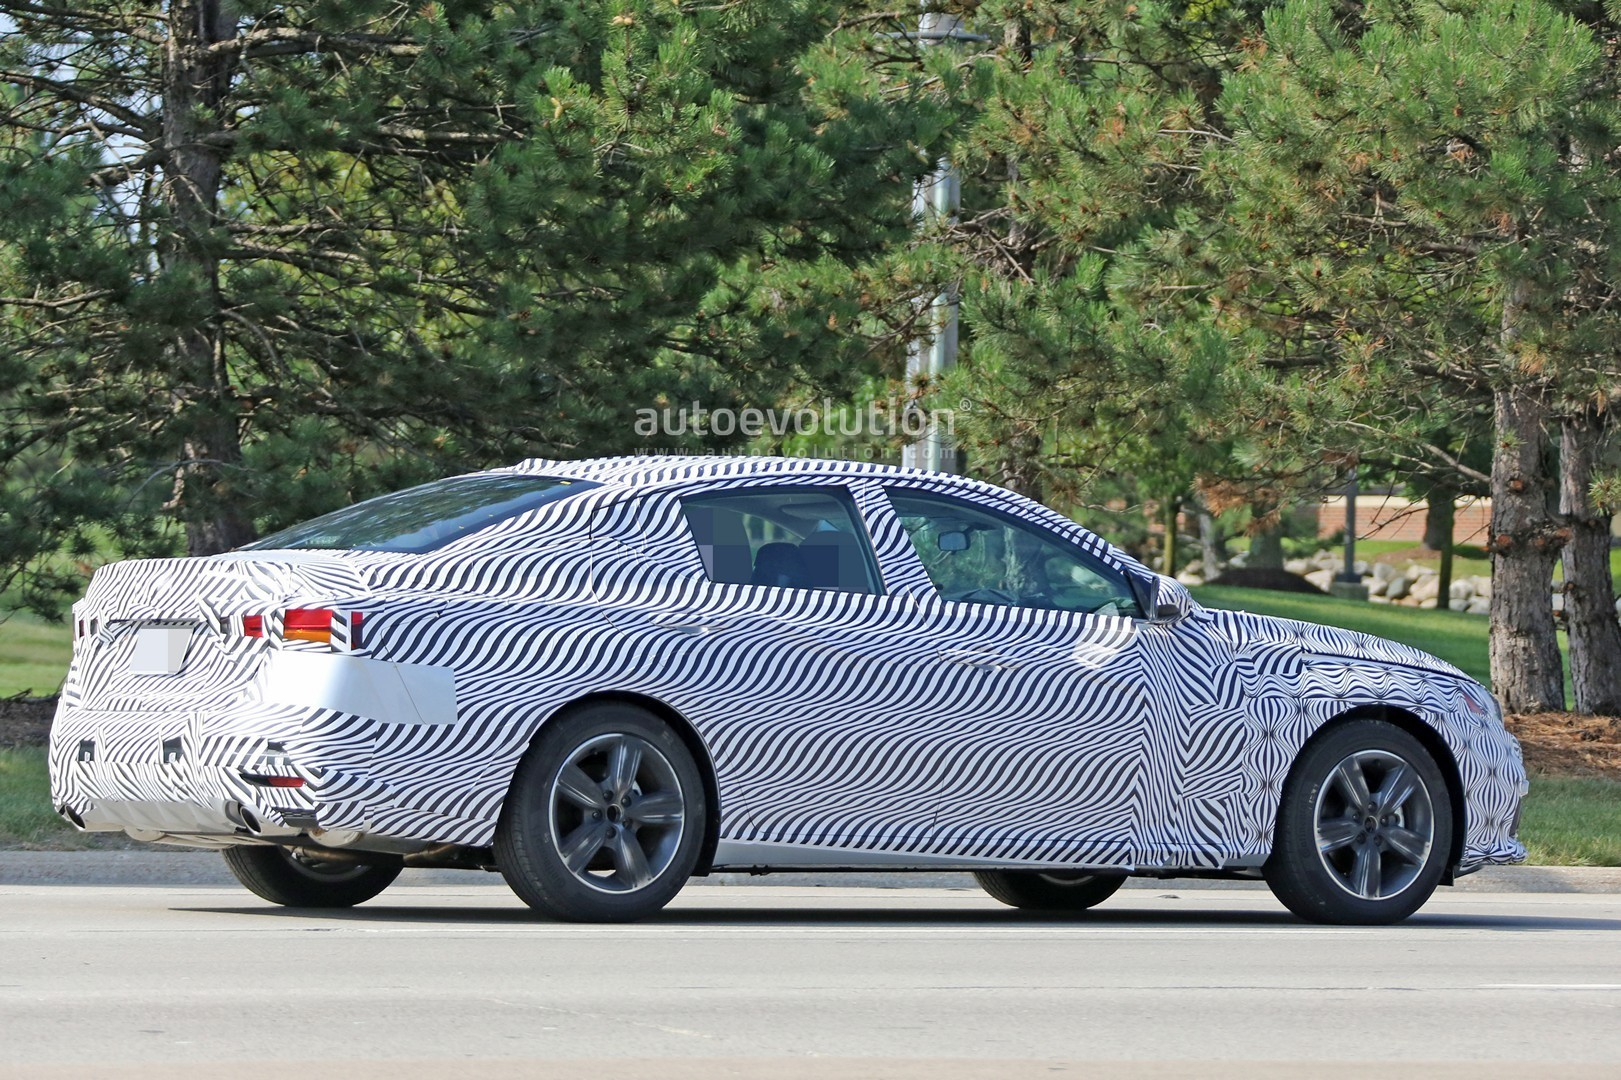 Spyshots 2019 nissan altima shows interior model targets the accord and camry autoevolution